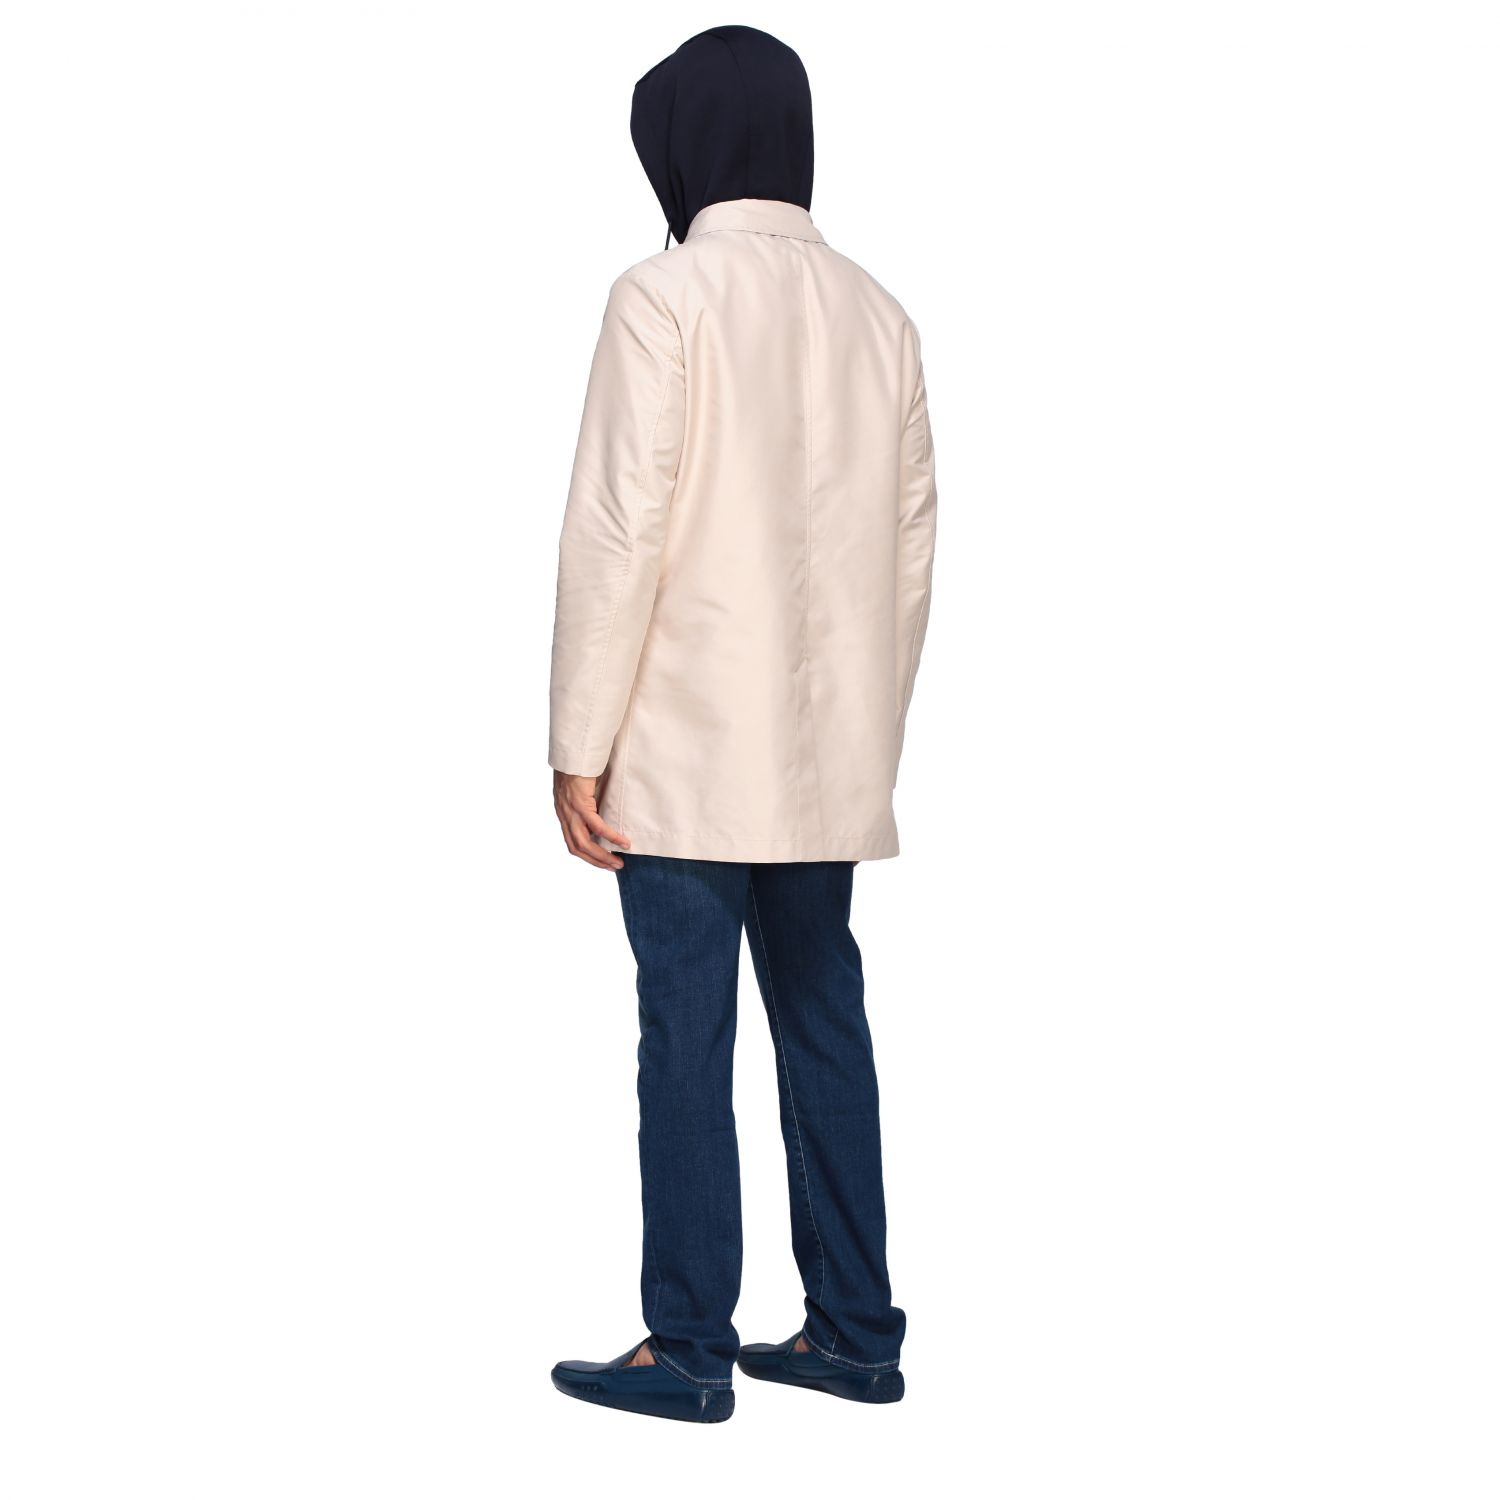 Trench Fay: Trench-coat droit à capuche Fay crème 2